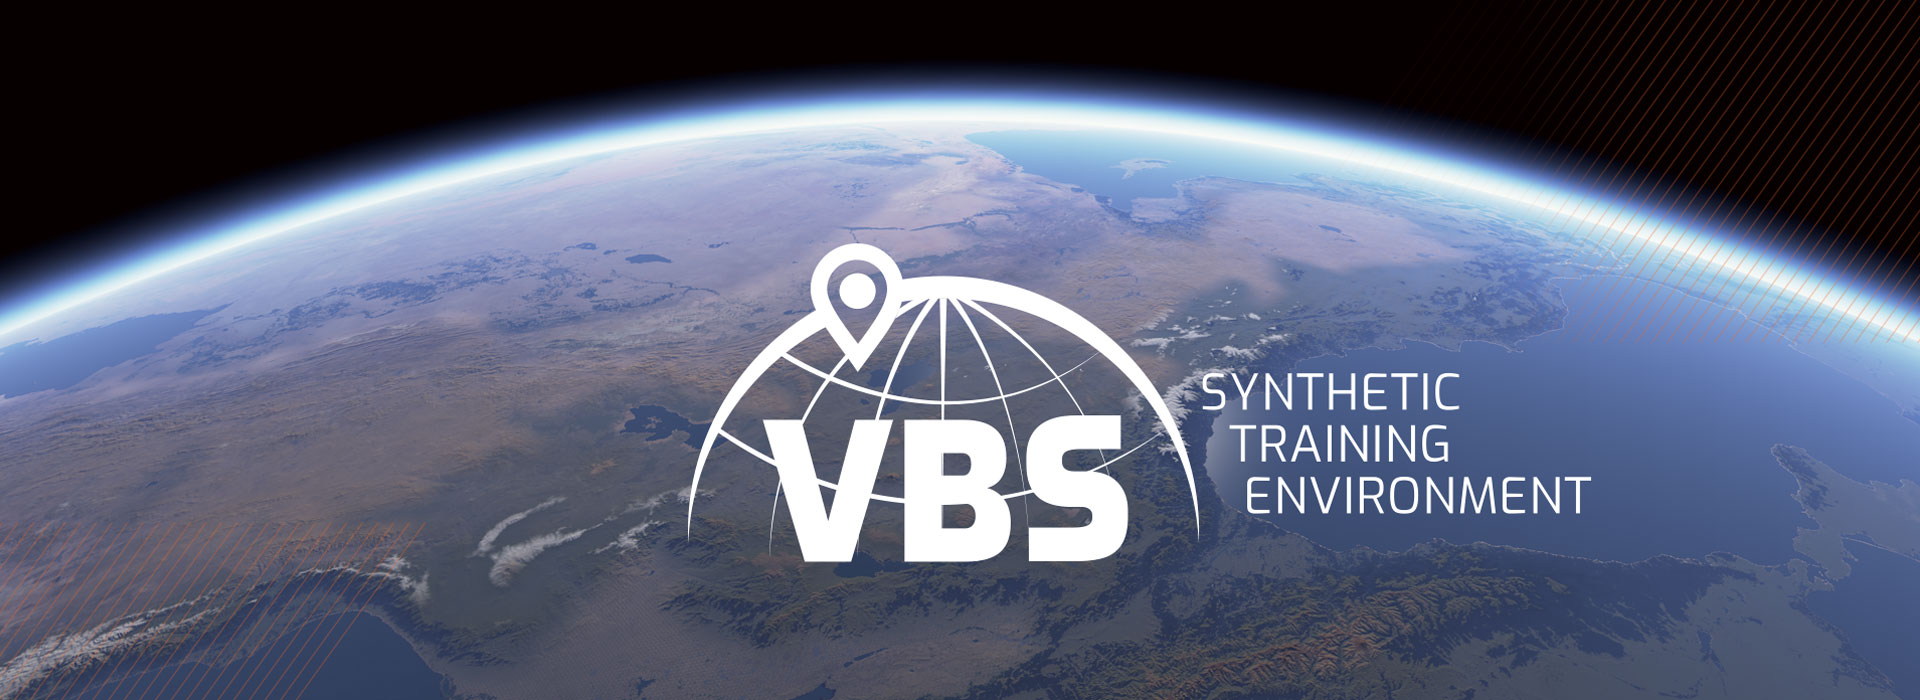 VBS Synthetic Training Environment for the U.S. Army